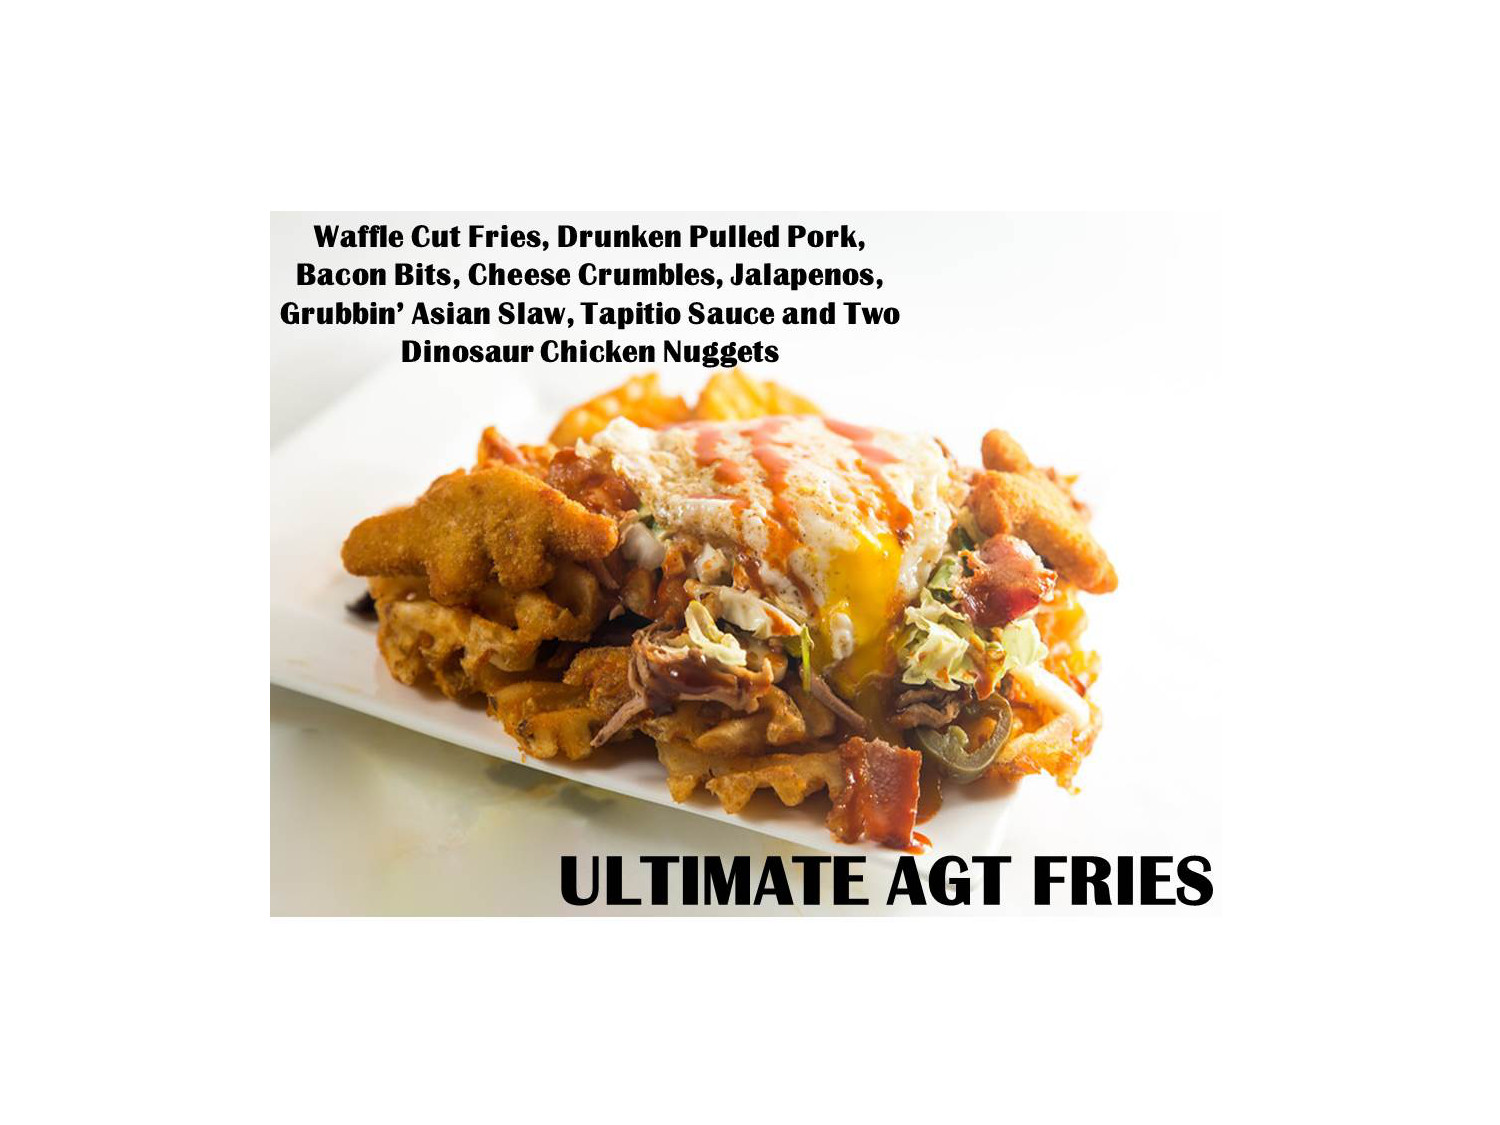 Ultimate AGT Fries_web.JPG